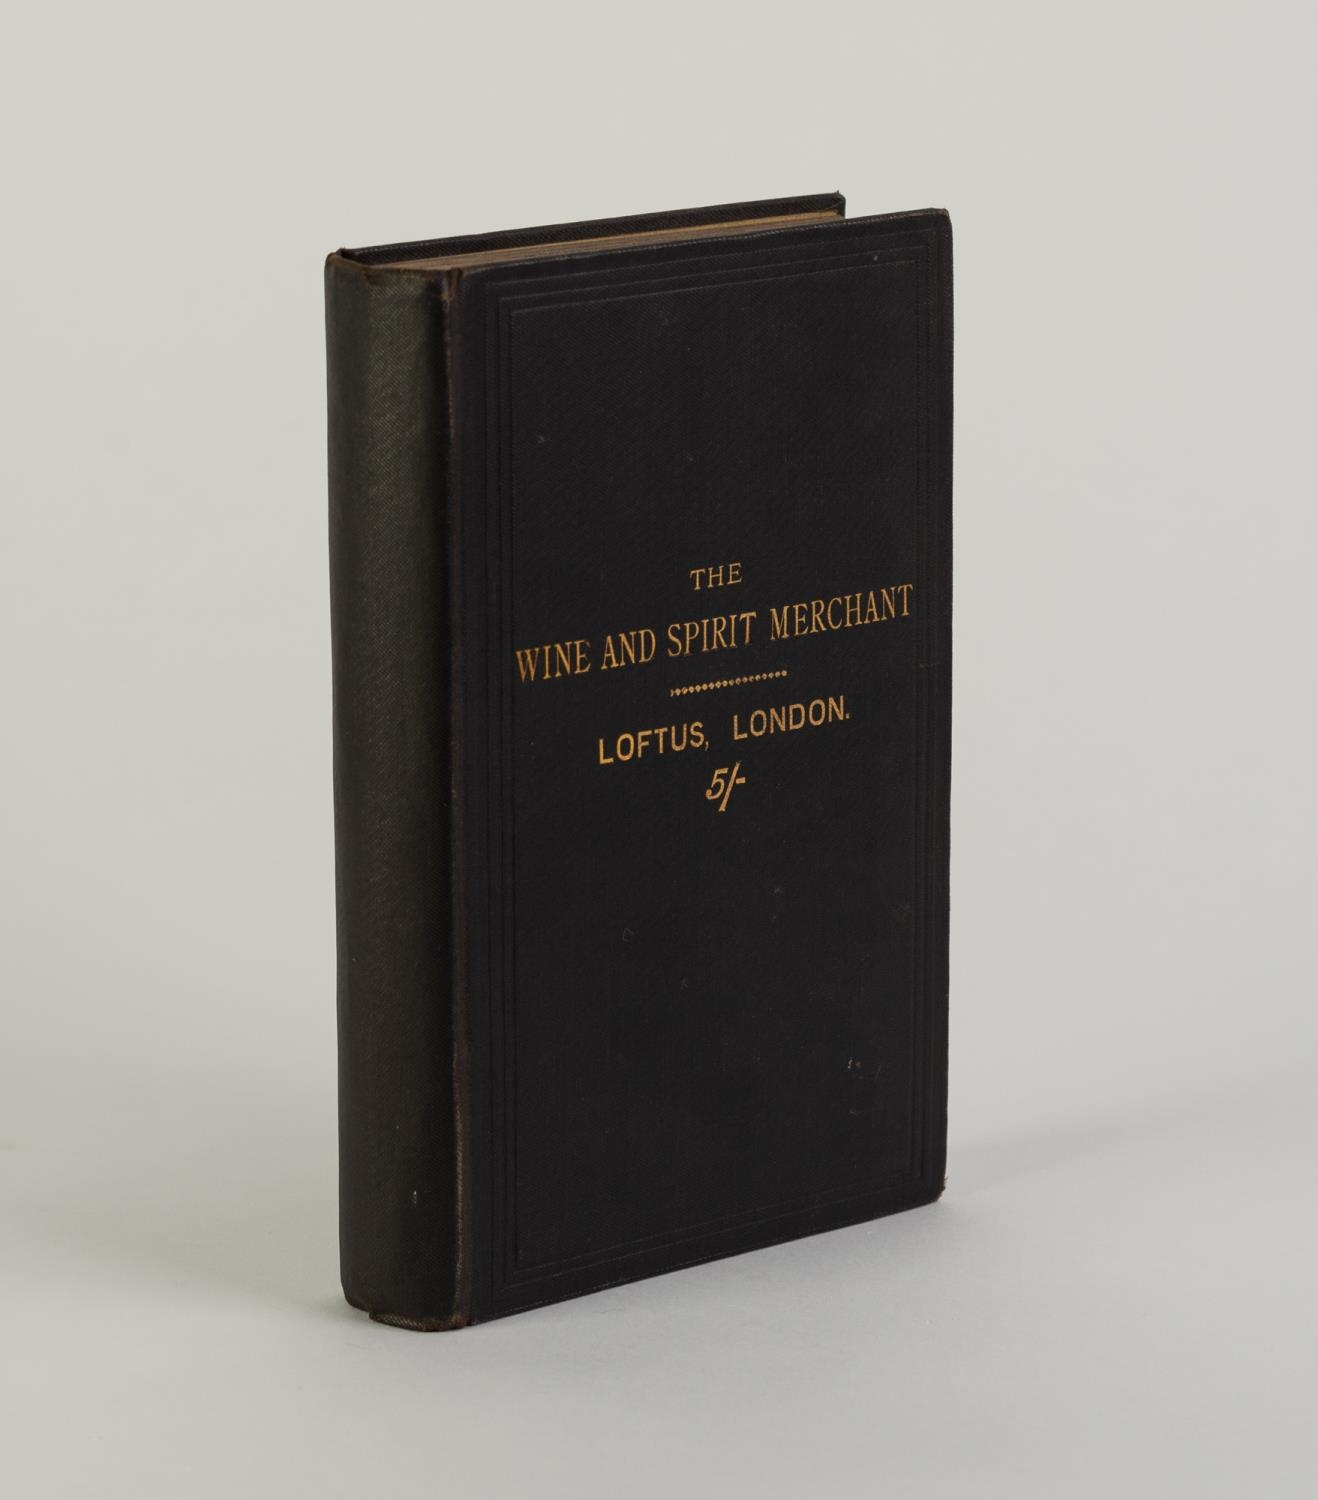 W R LOFTUS, The Wine and Spirit Merchant, New and Revised Edition A Familiar Treatise for